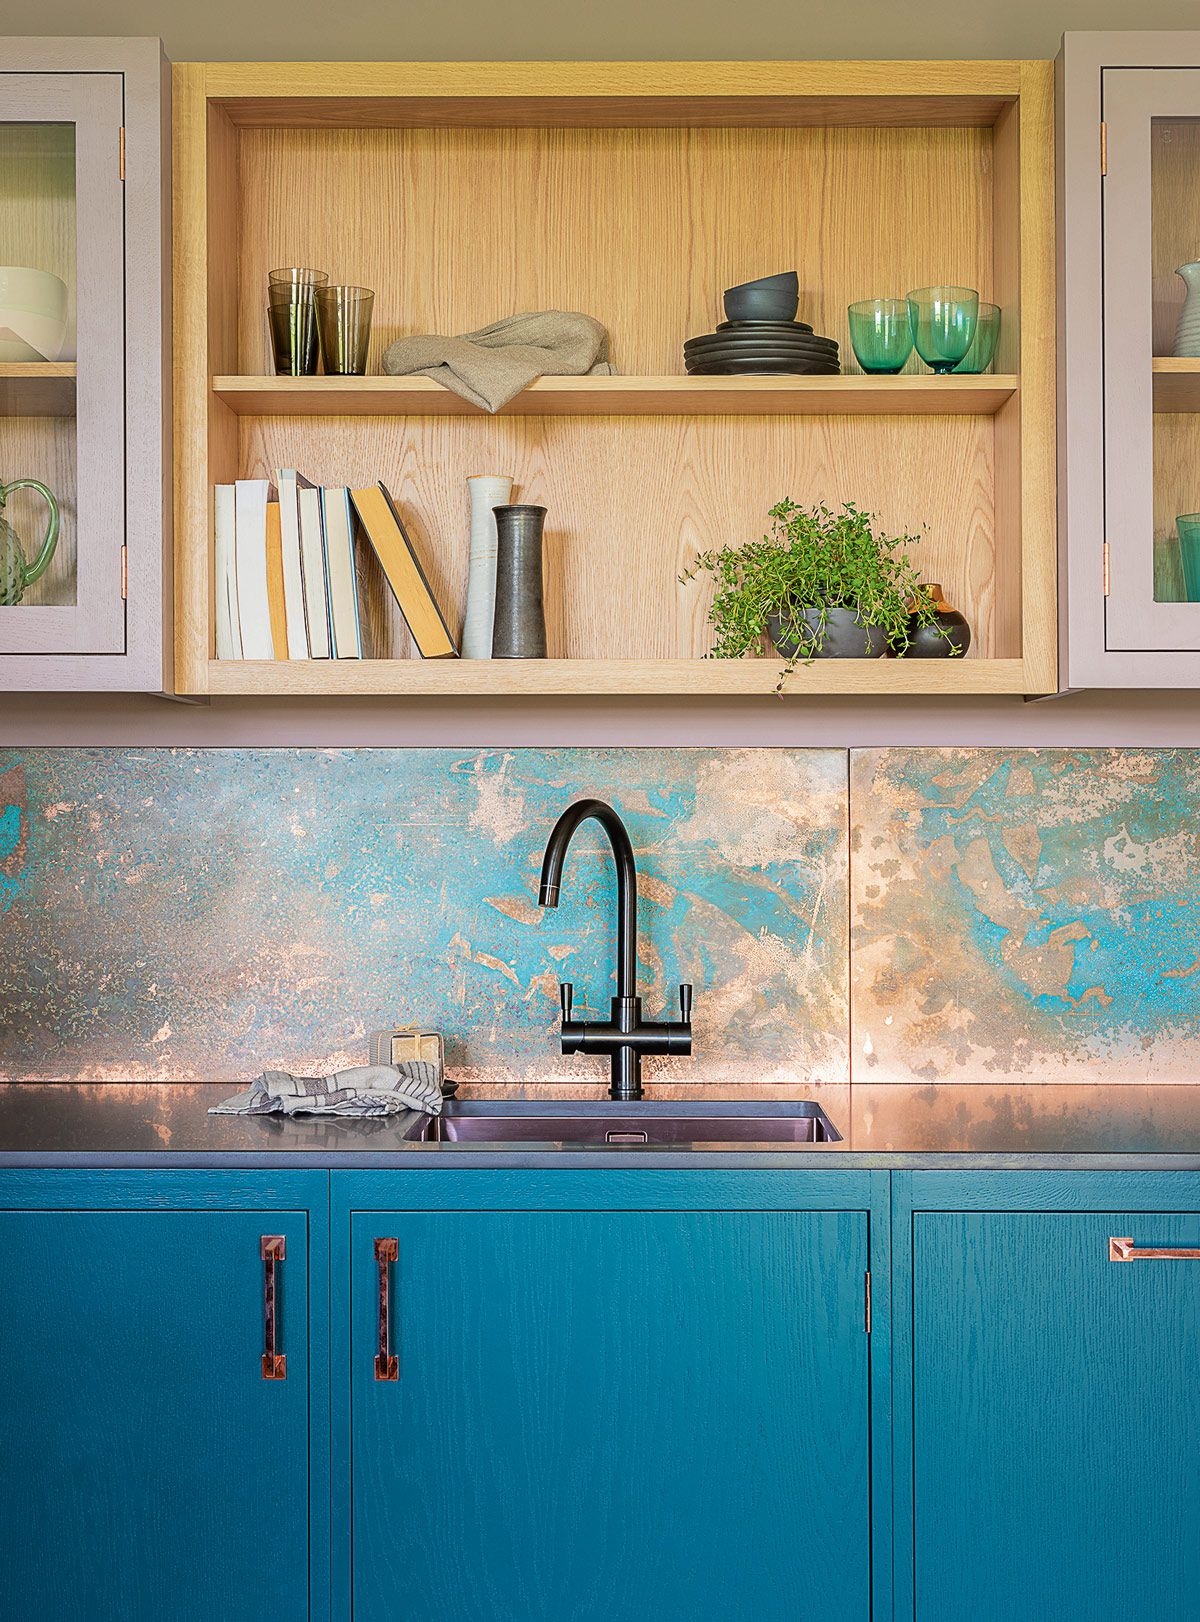 Best Step Up Your Kitchen Style With The Latest Design Trends 400 x 300